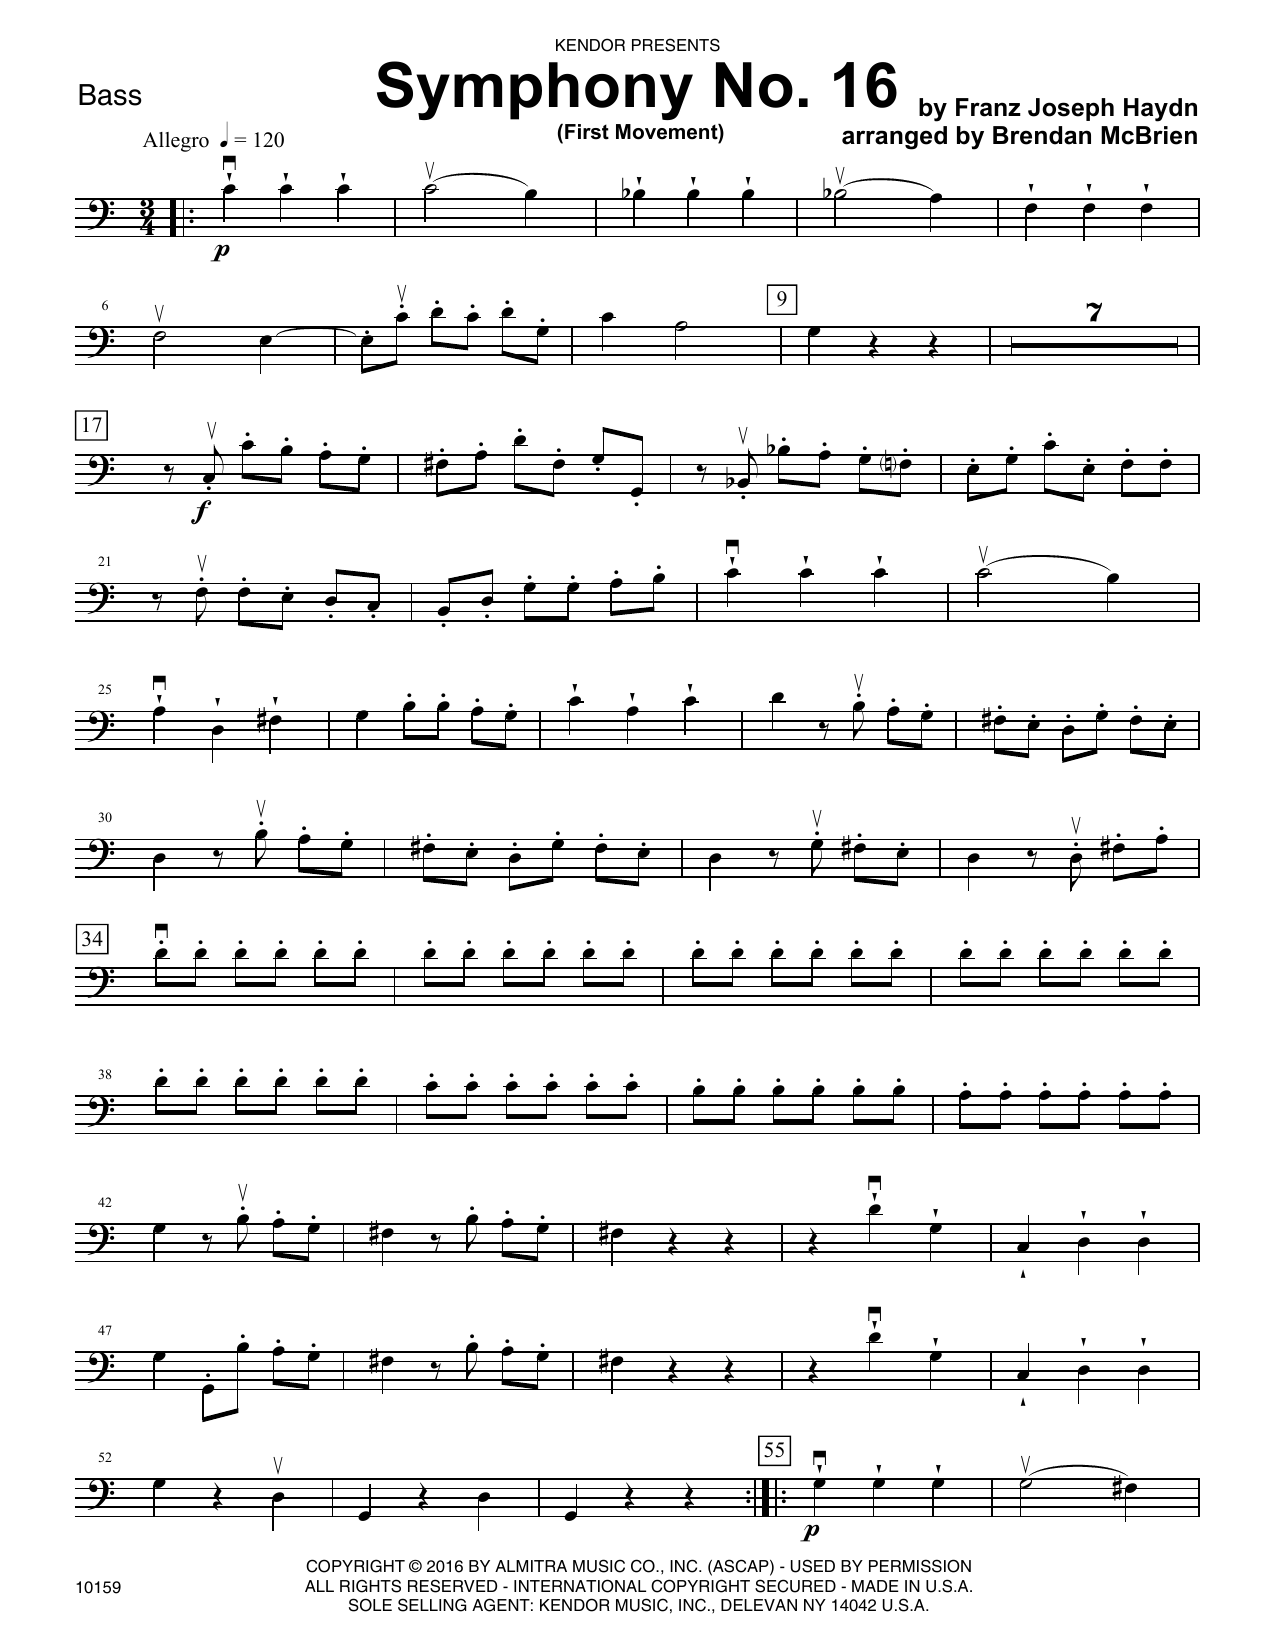 Symphony No. 16 (First Movement) - Bass